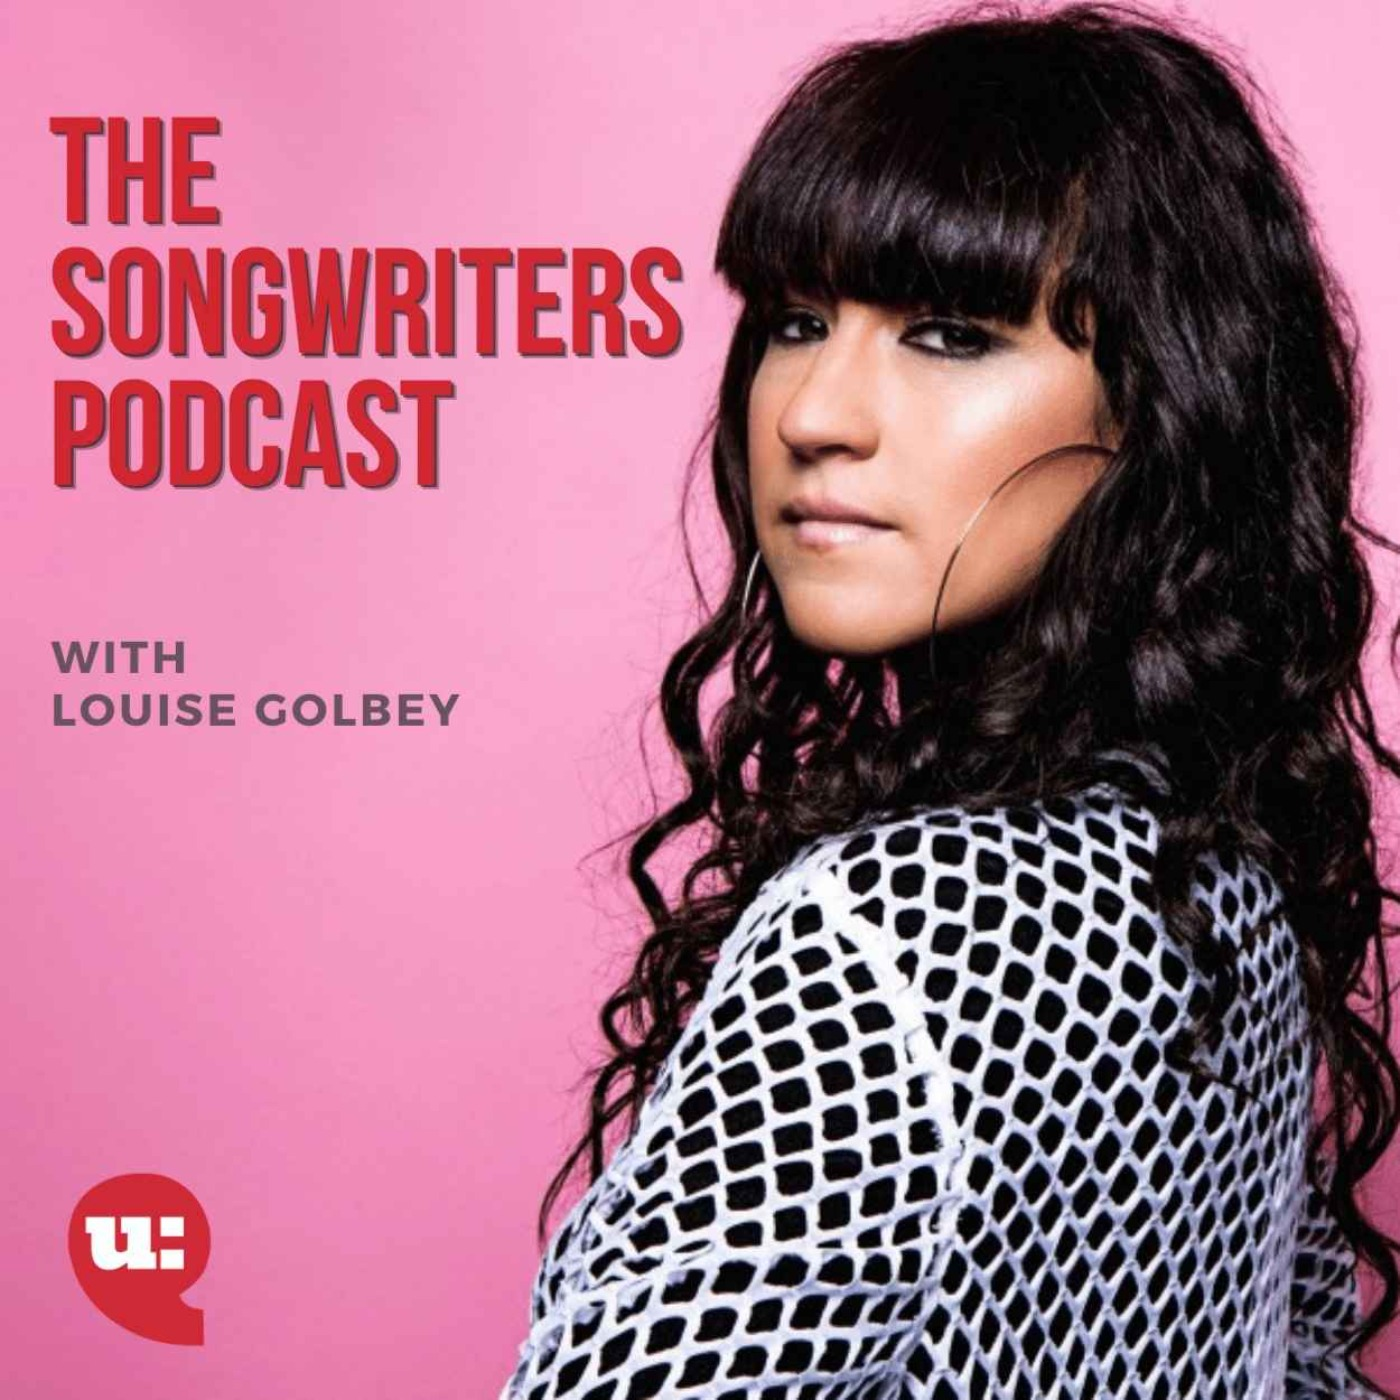 The Songwriters Podcast